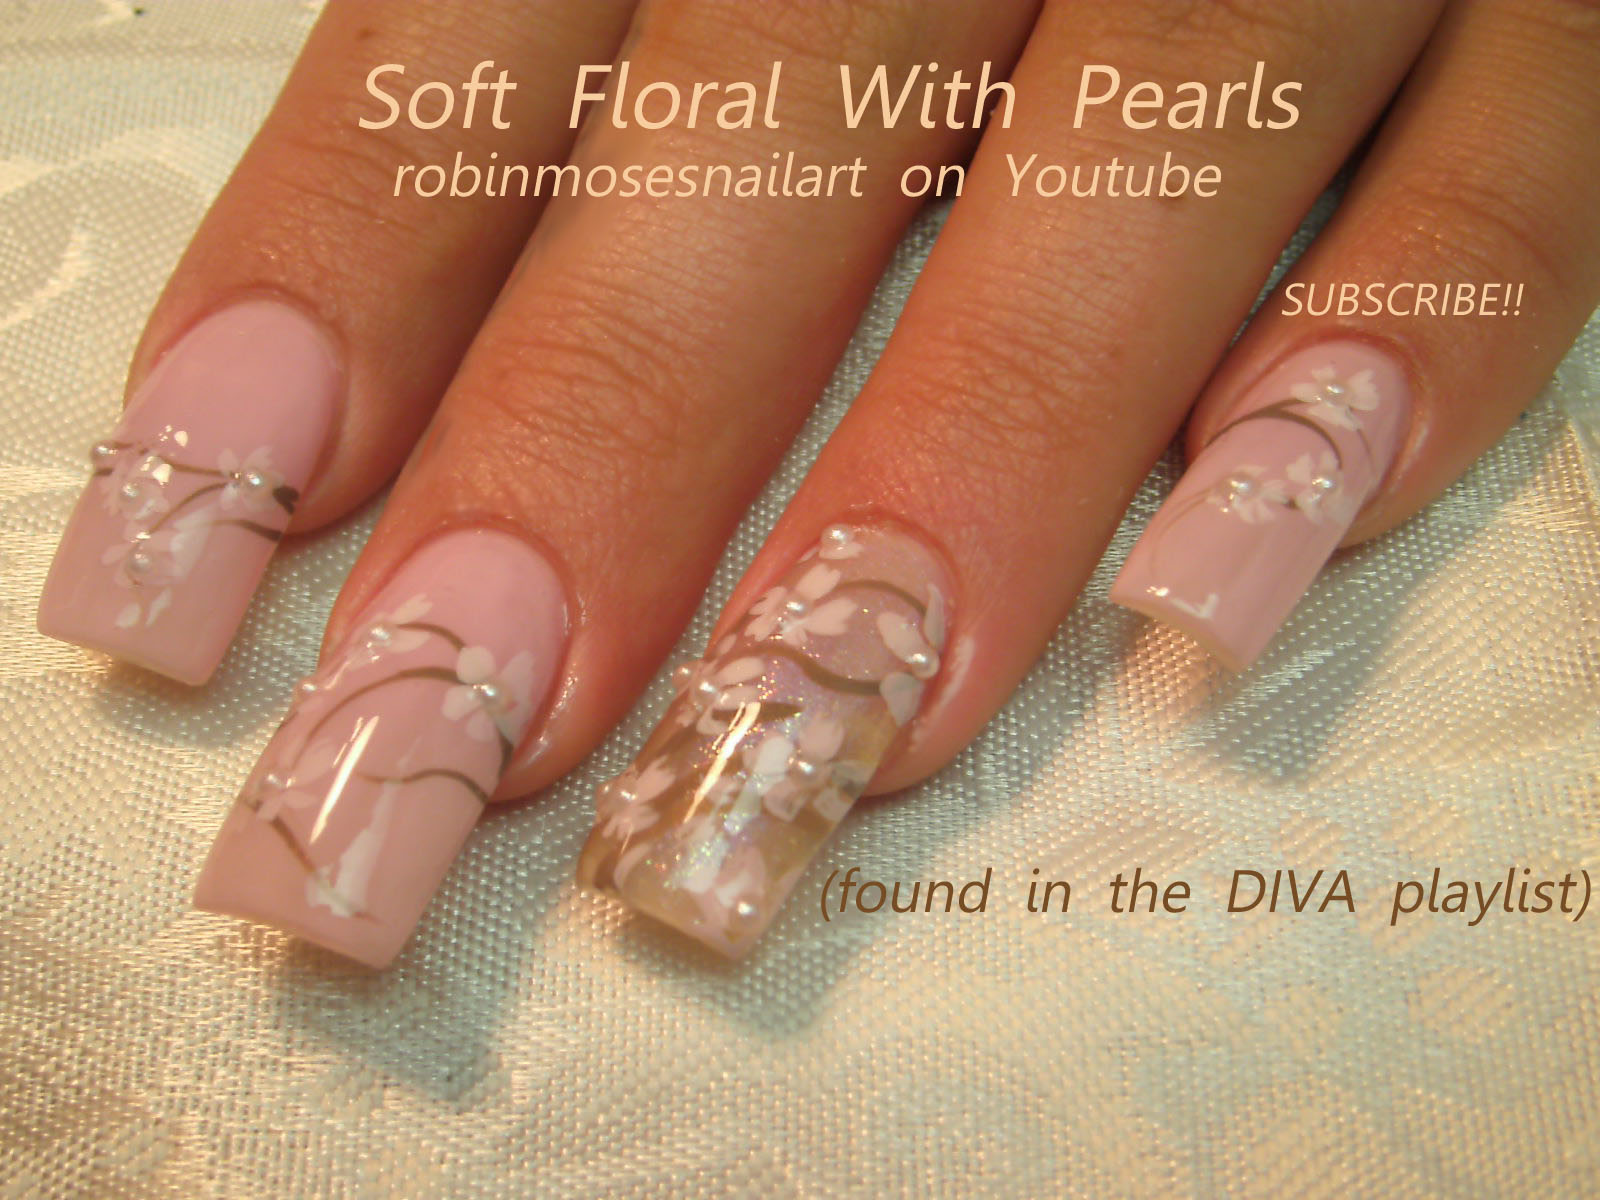 Nail art design robinmosesnailart april showers bring may robinmosesnailart april showers bring may flowers robin moses long wedding nails wedding nails with pearls long neutral nails lavender flower nail prinsesfo Image collections